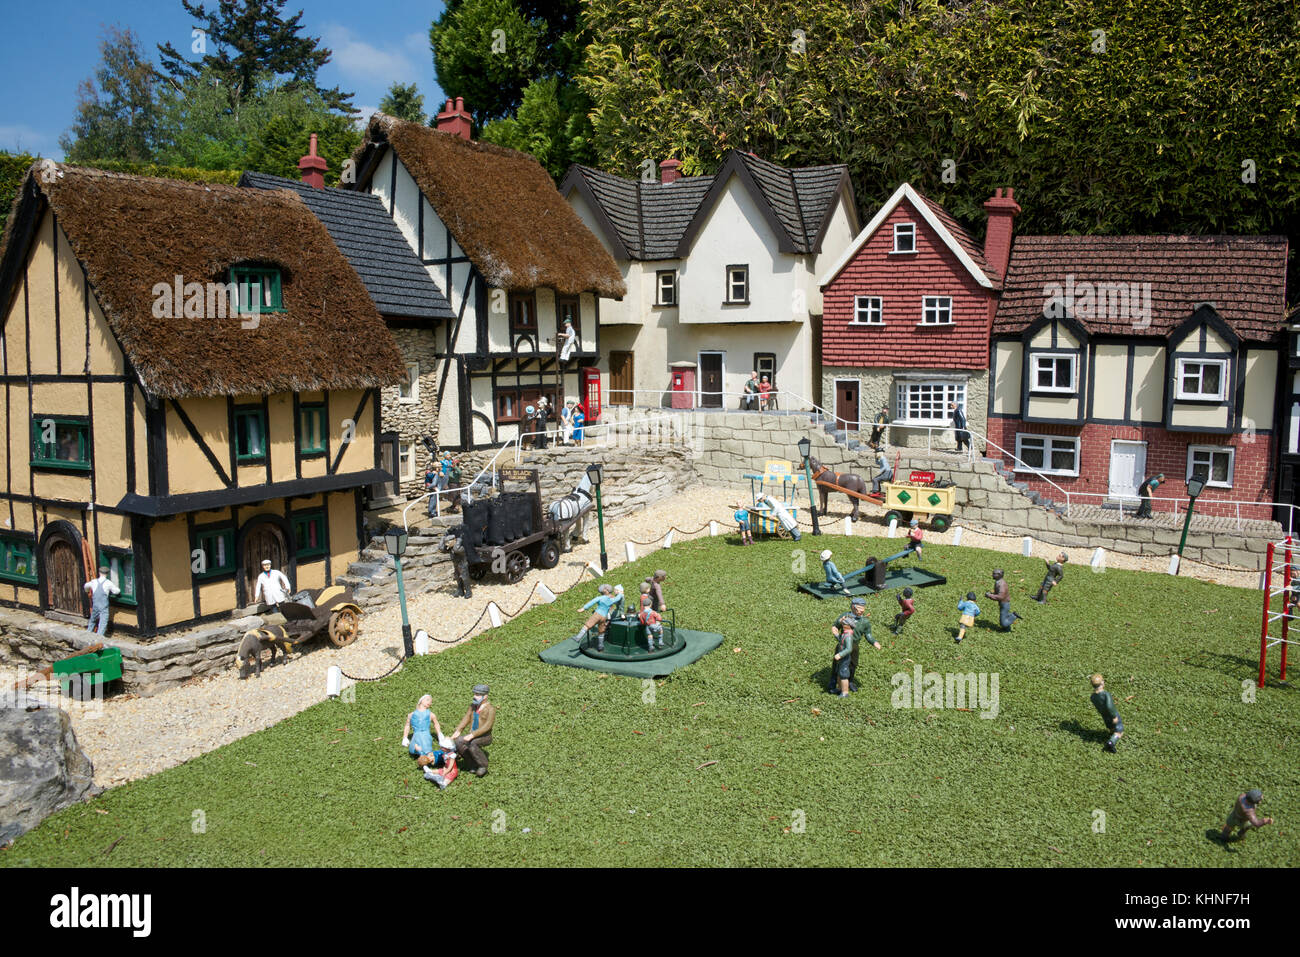 Playground and houses Bekonscot Model Village Beaconsfield Buckinghamshire England - Stock Image